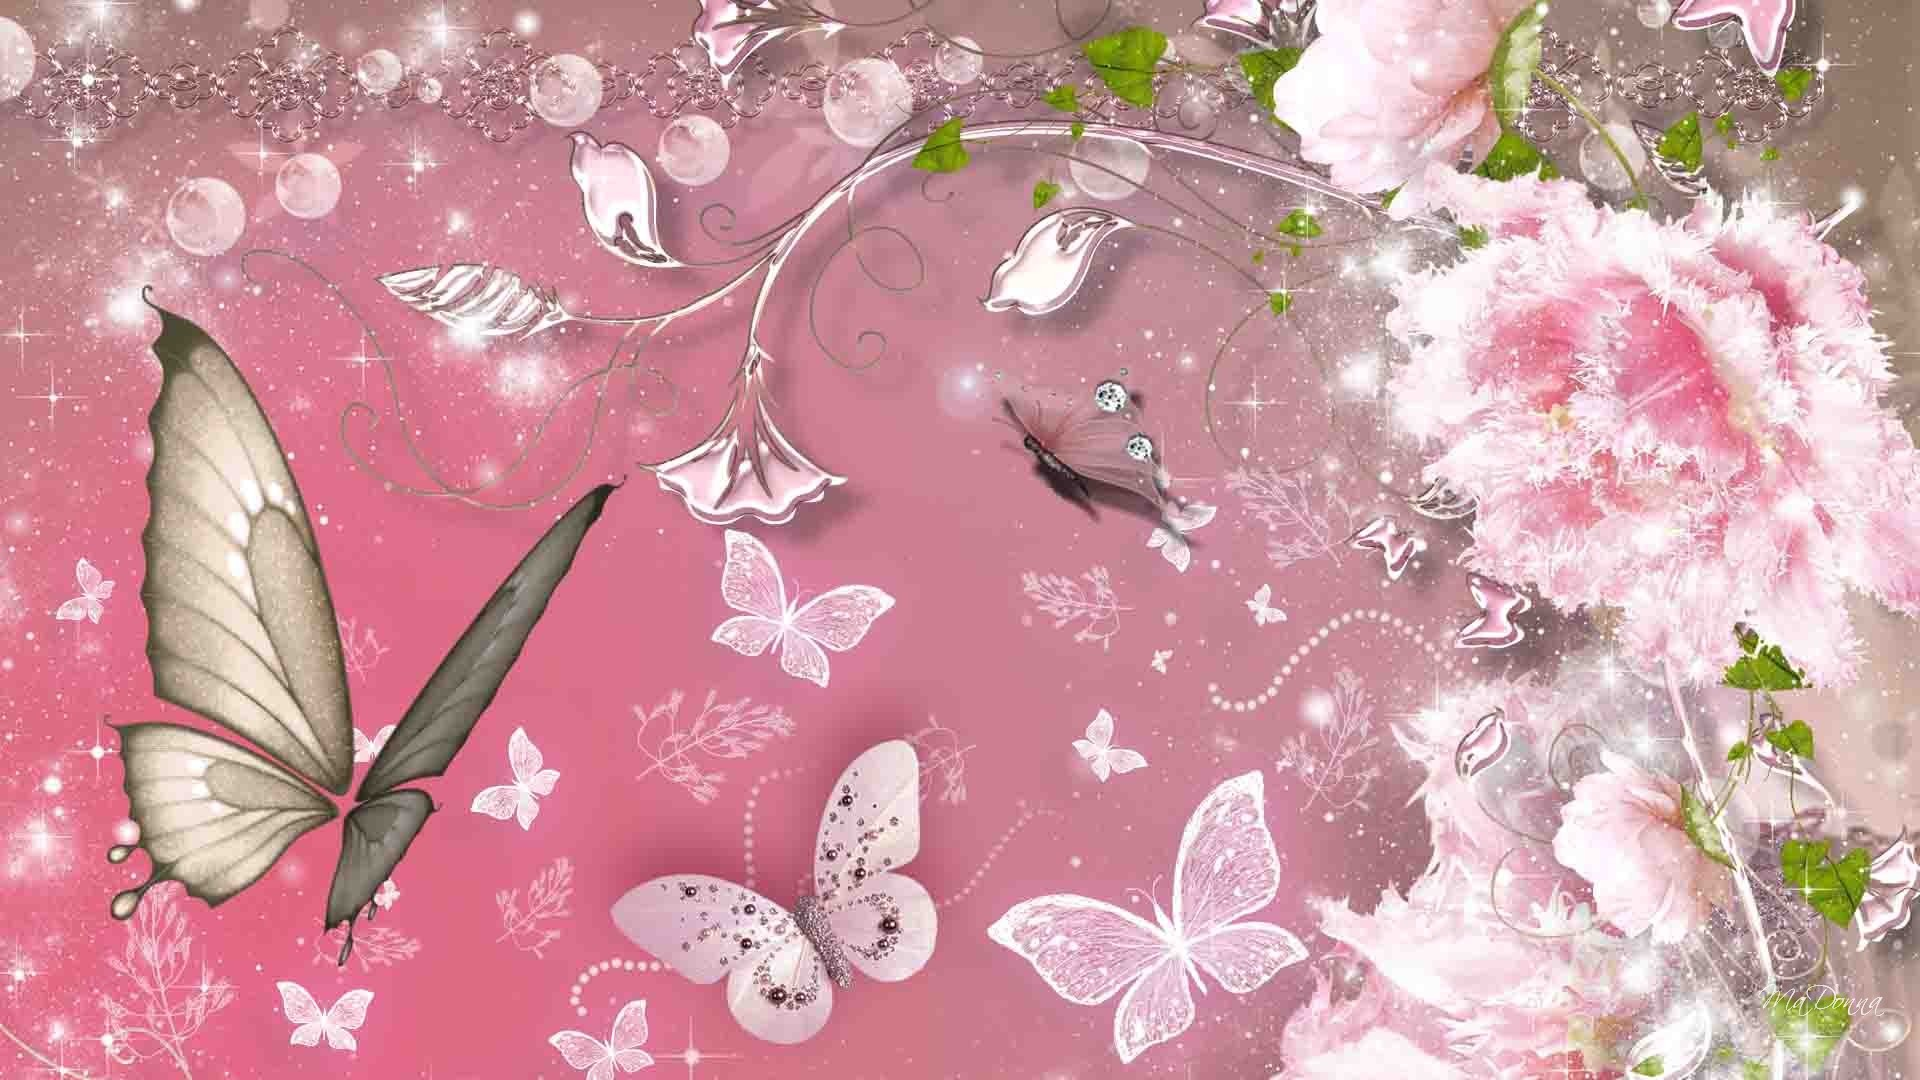 Free Desktop Pictures Of Flowers And Butterflies Butterfly - Pink Summer Flower Theme , HD Wallpaper & Backgrounds